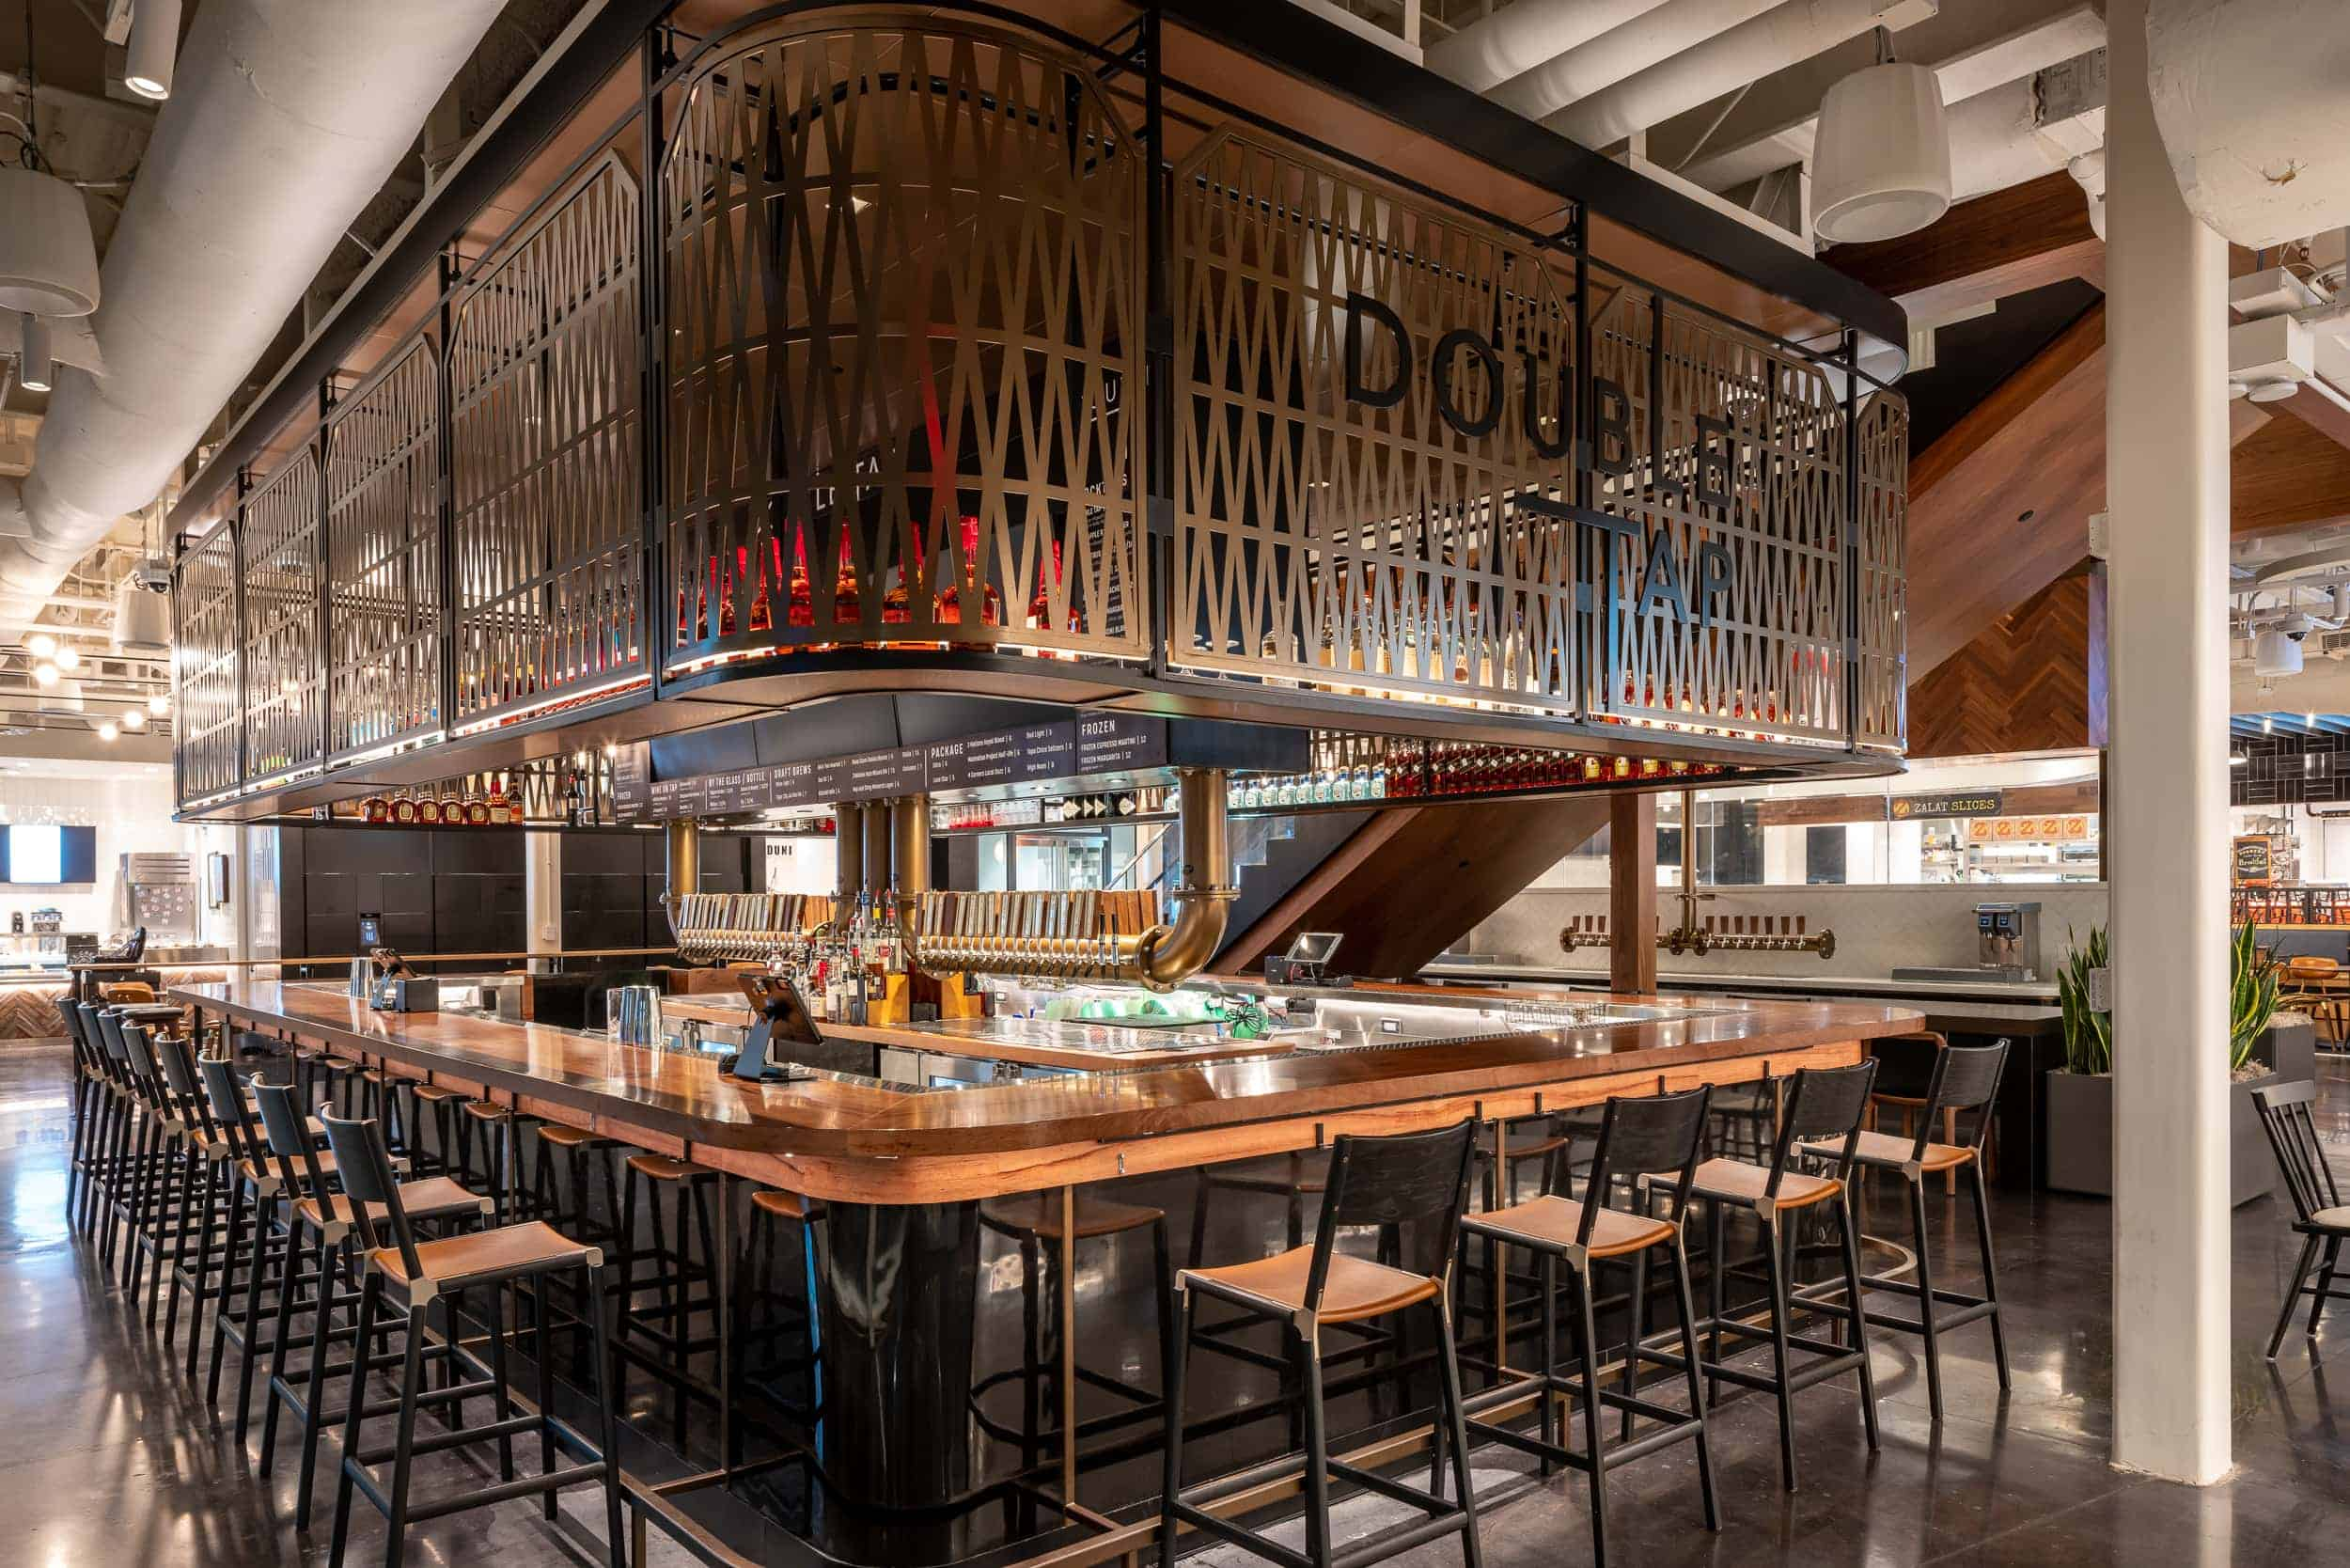 """Tableaux Decorative Grilles at """"Double Tap Bar"""", AT&T Discovery District, Dallas, TX"""